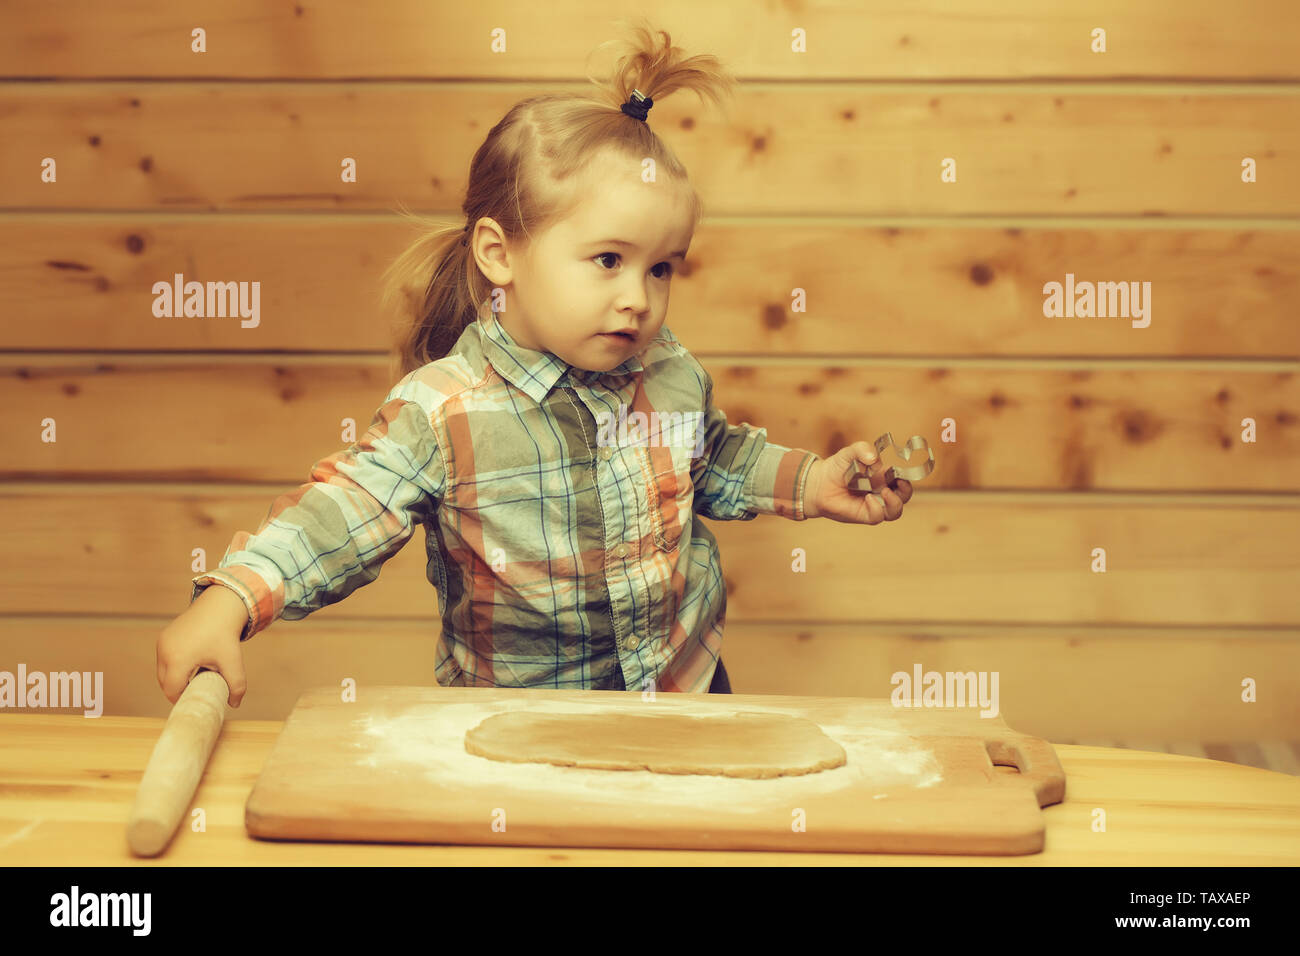 5b49c90e3 adorable small child chef or cute baby boy in fashionable chekered shirt  cooking on board flour